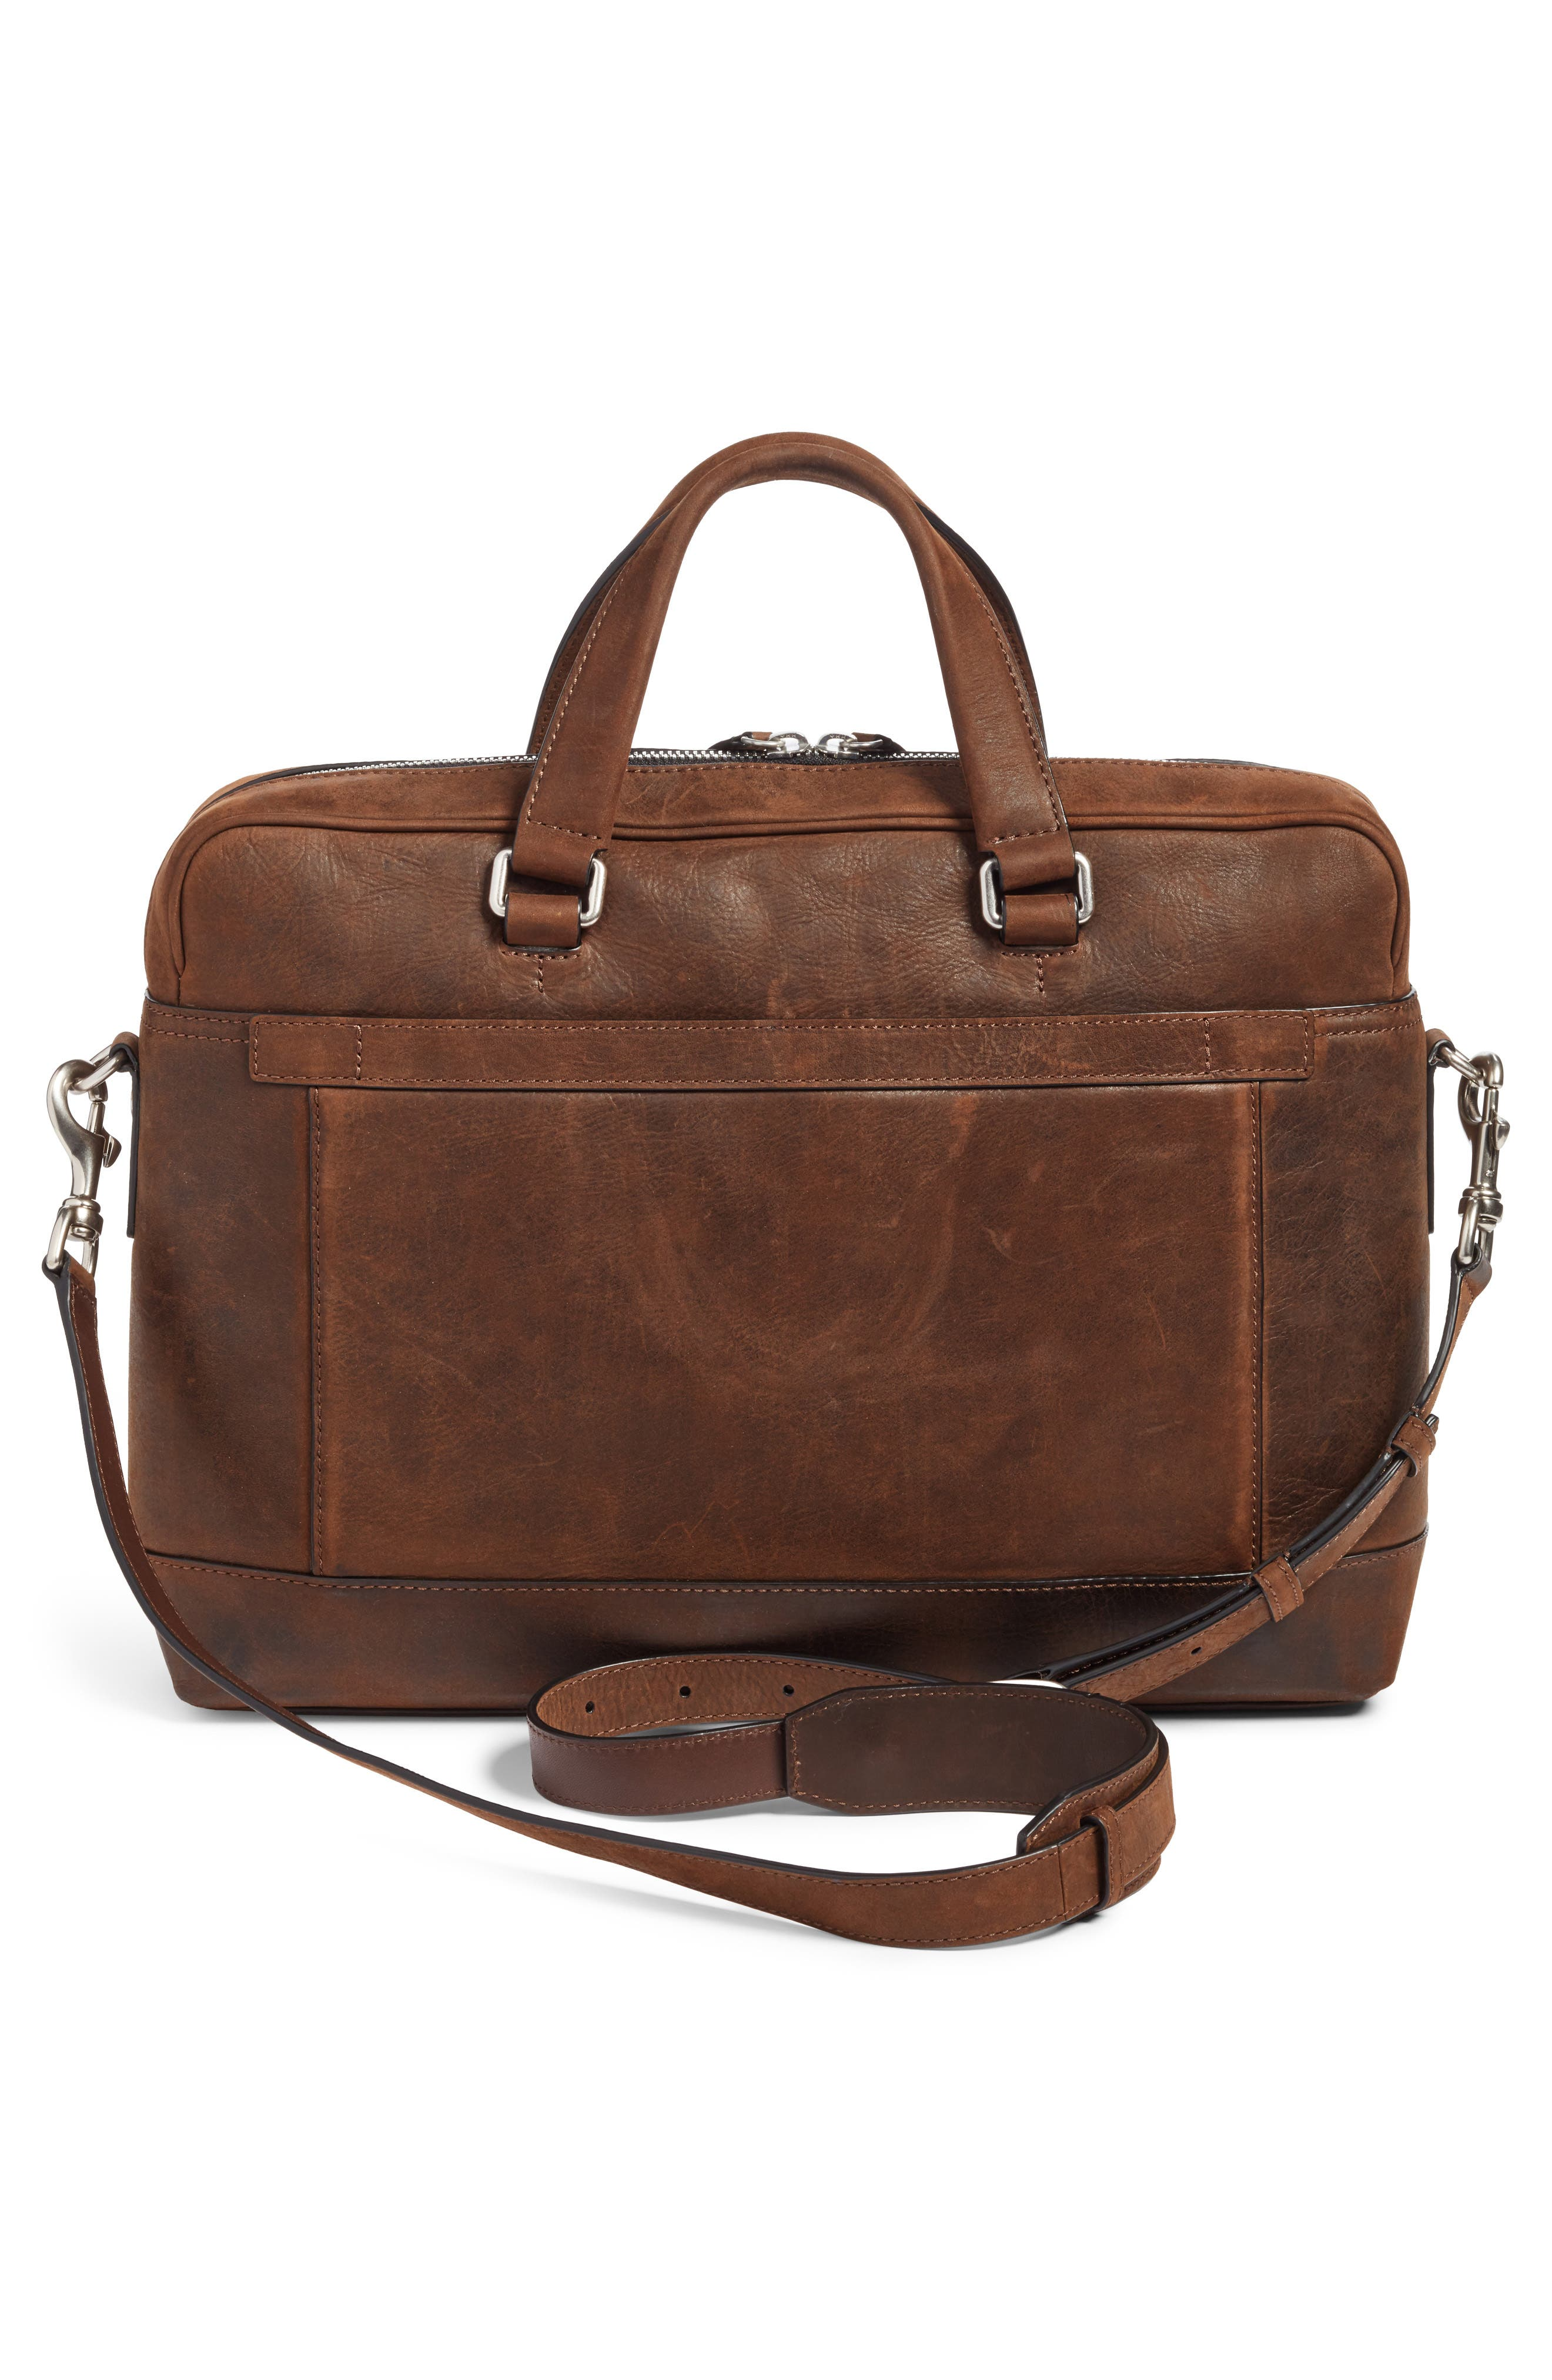 Oliver Leather Briefcase,                             Alternate thumbnail 3, color,                             Dark Brown